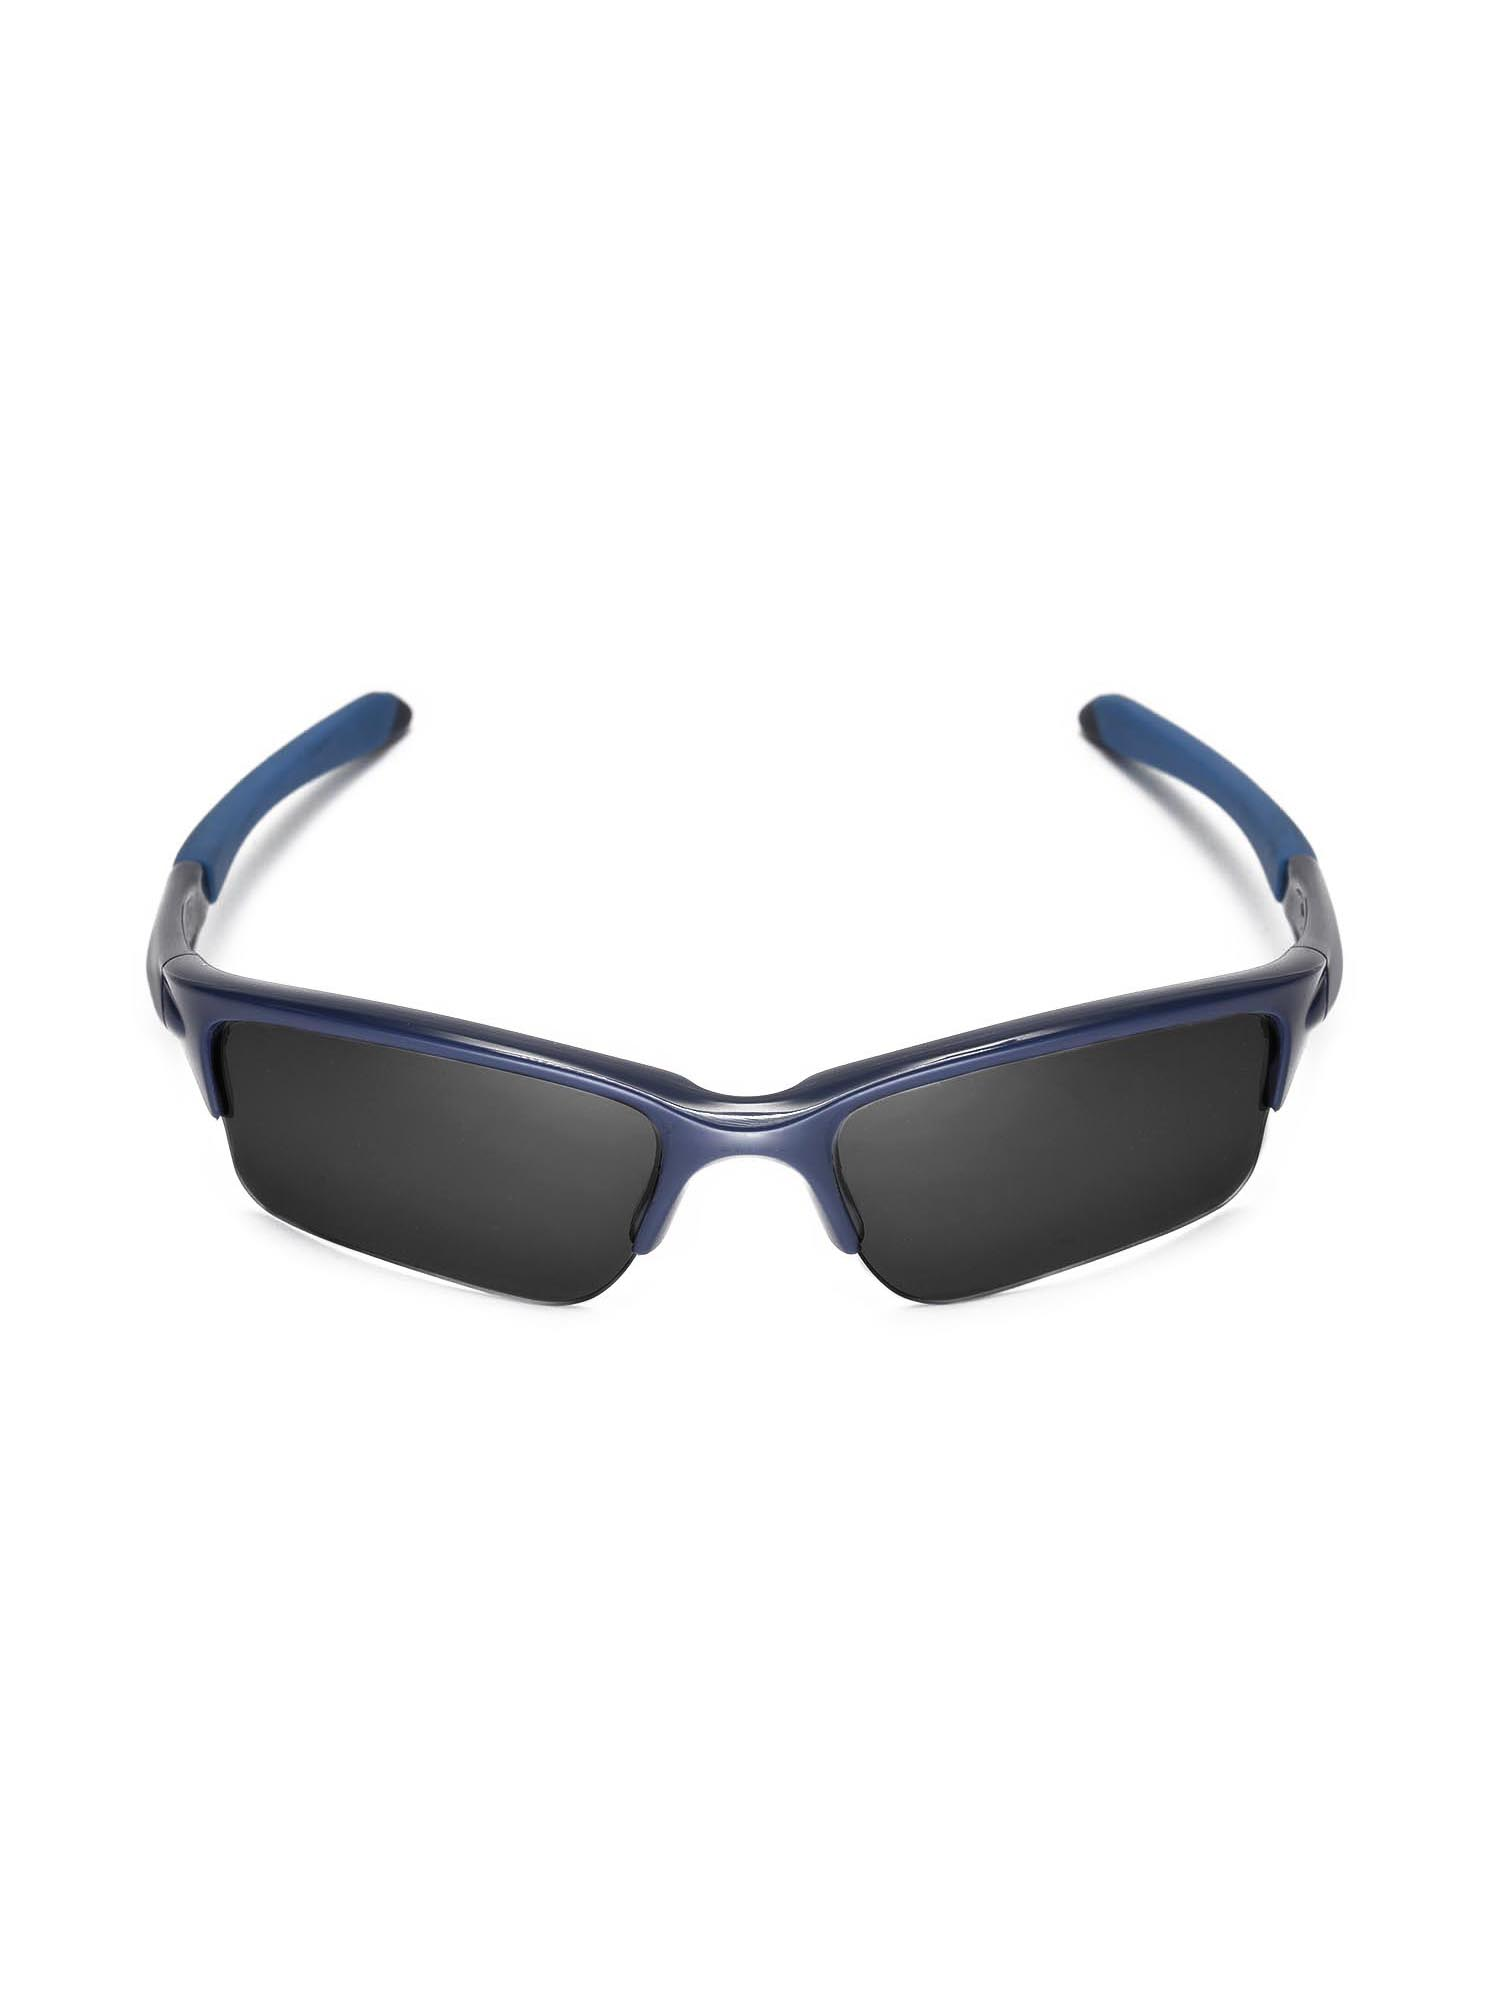 f35bffb7cf8 Walleva - Walleva Ice Blue Polarized Replacement Lenses for Oakley Quarter  Jacket Sunglasses - Walmart.com